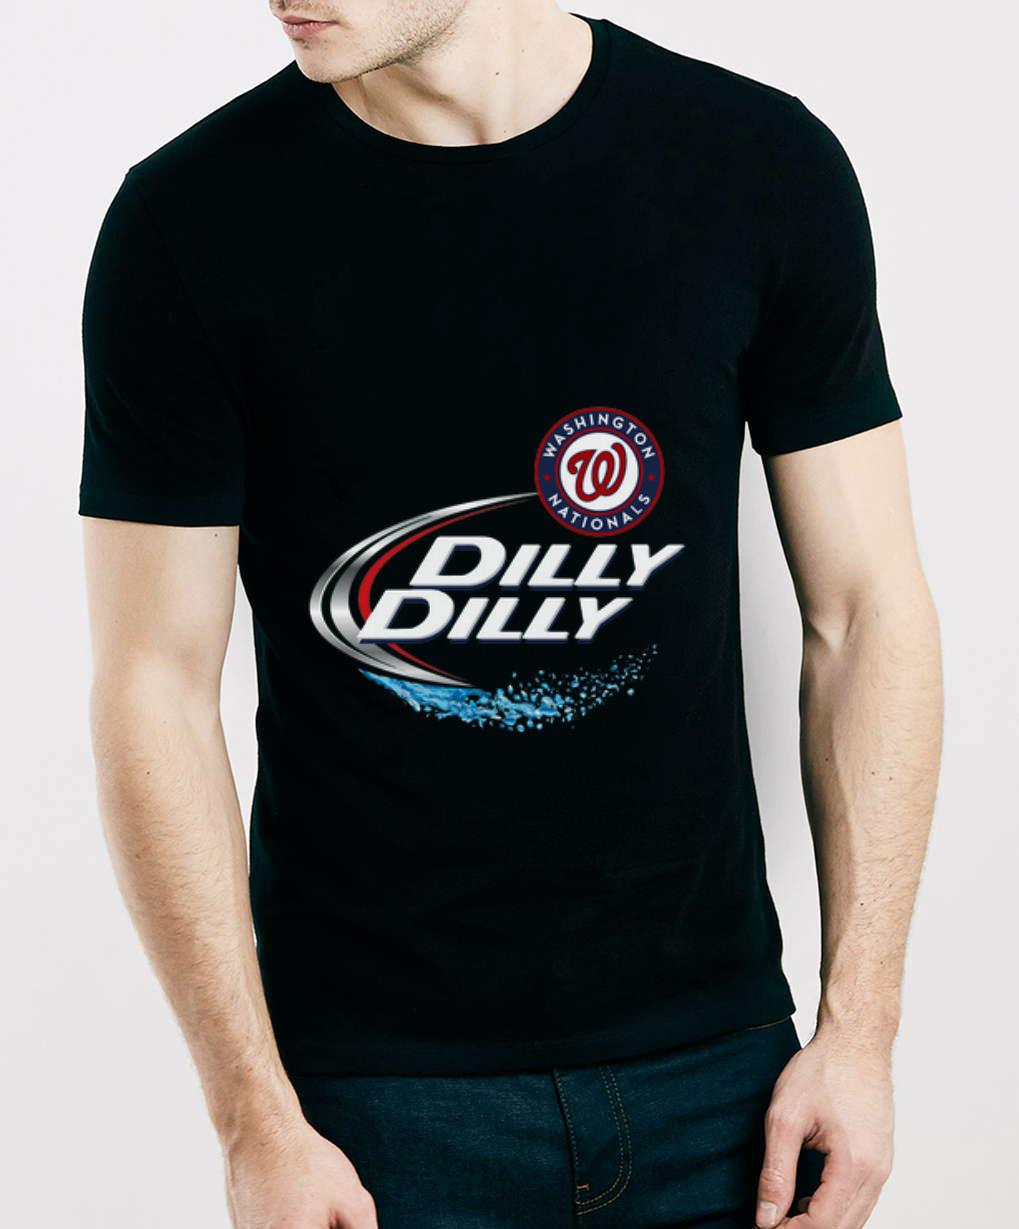 Official Dilly Dilly Washington Nationals Champions 2019 Shirt 3 1.jpg